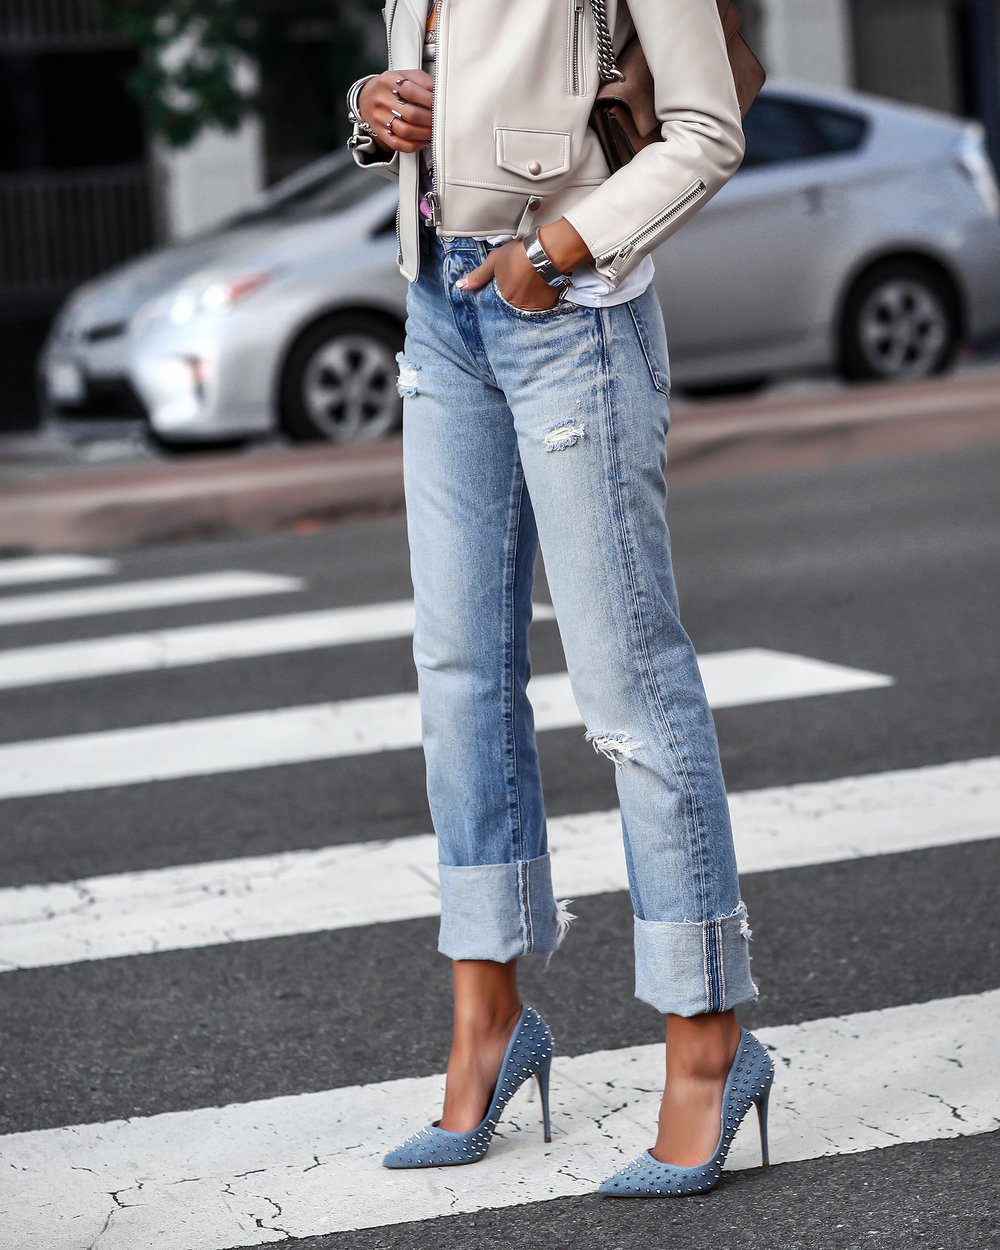 Steve Madden Denim Studded Pumps Moussy Ripped Denim